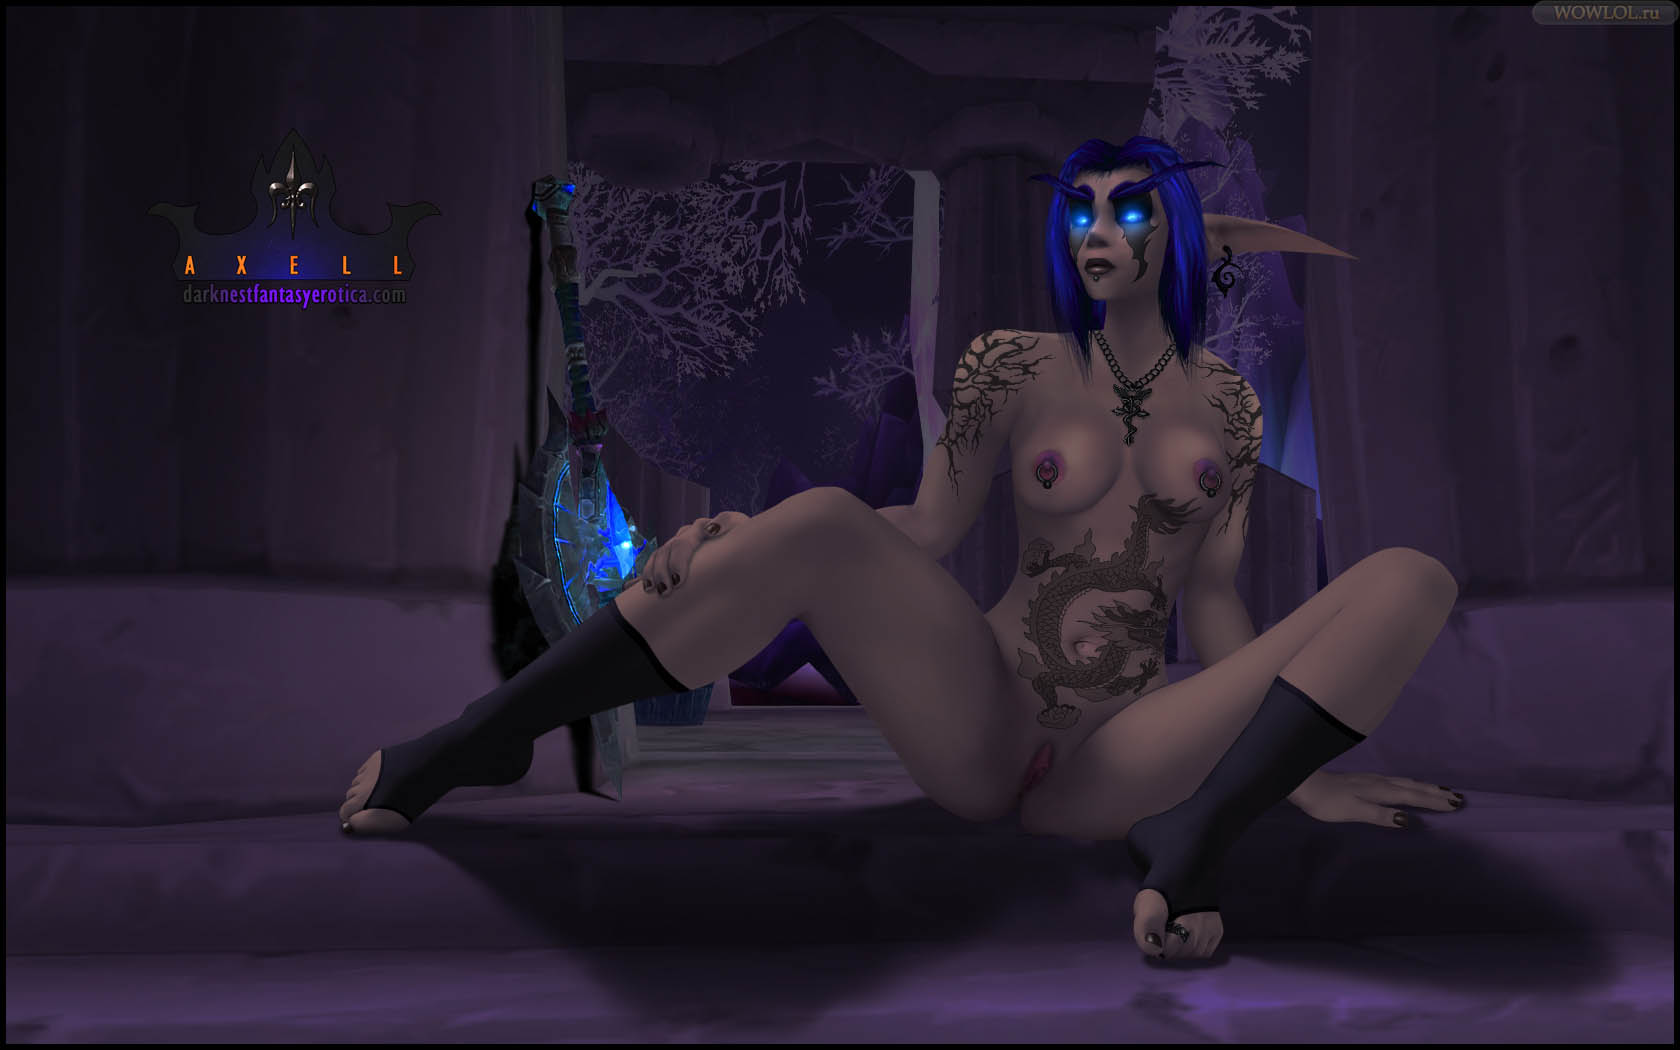 Wow nude patch jaina harpy hardcore galleries